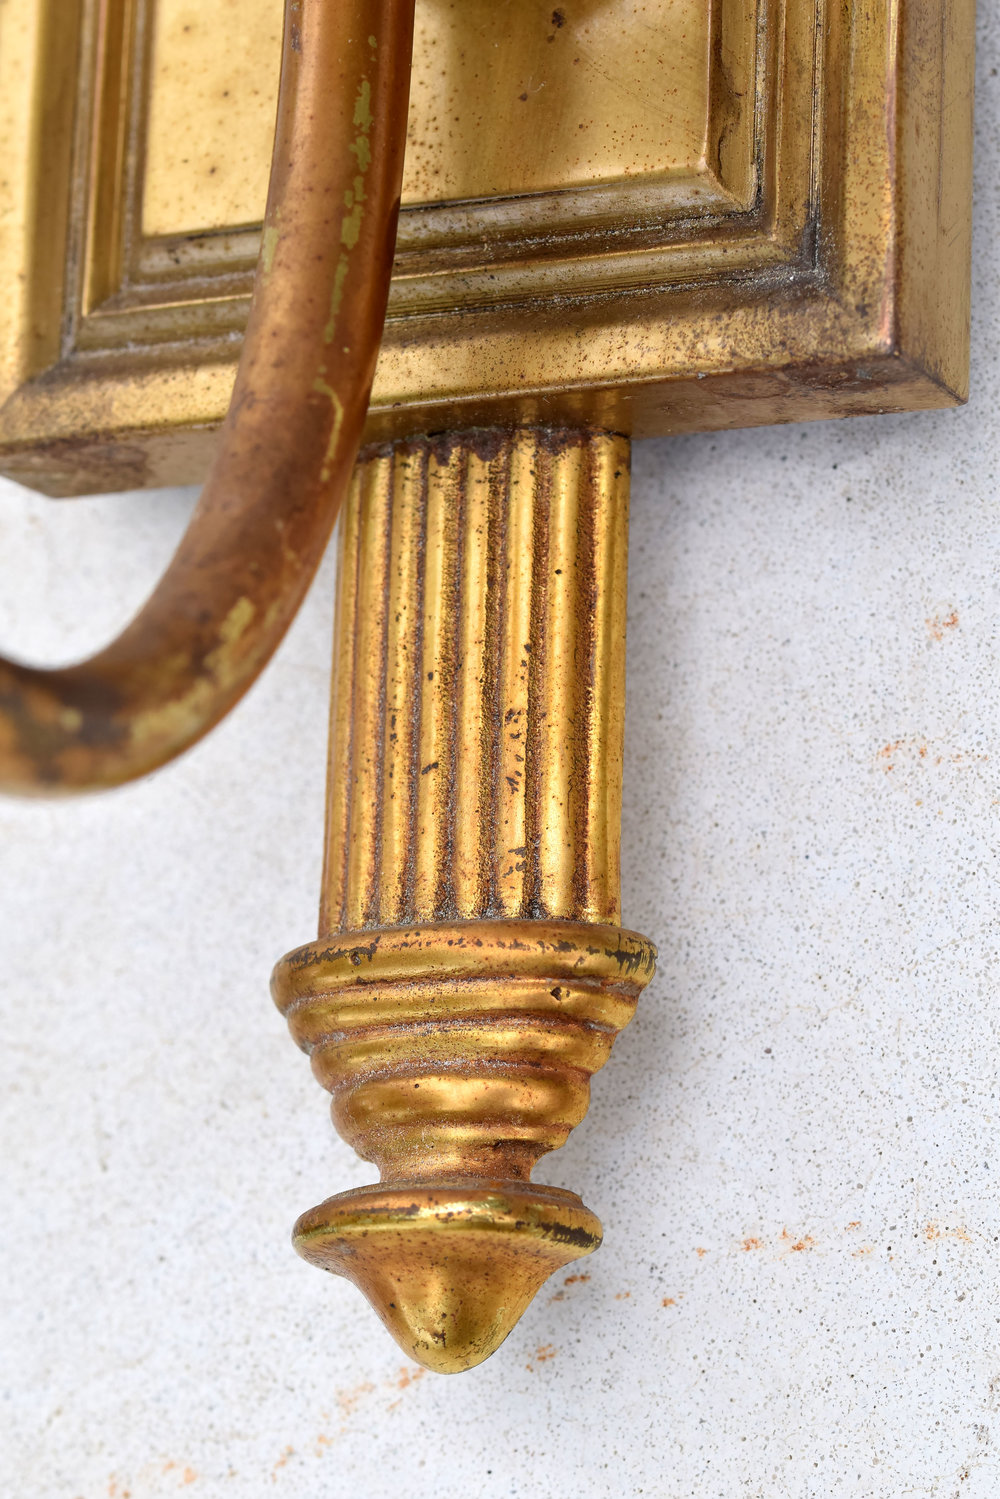 47482-single-arm-eagle-sconce-brass-detial.jpg